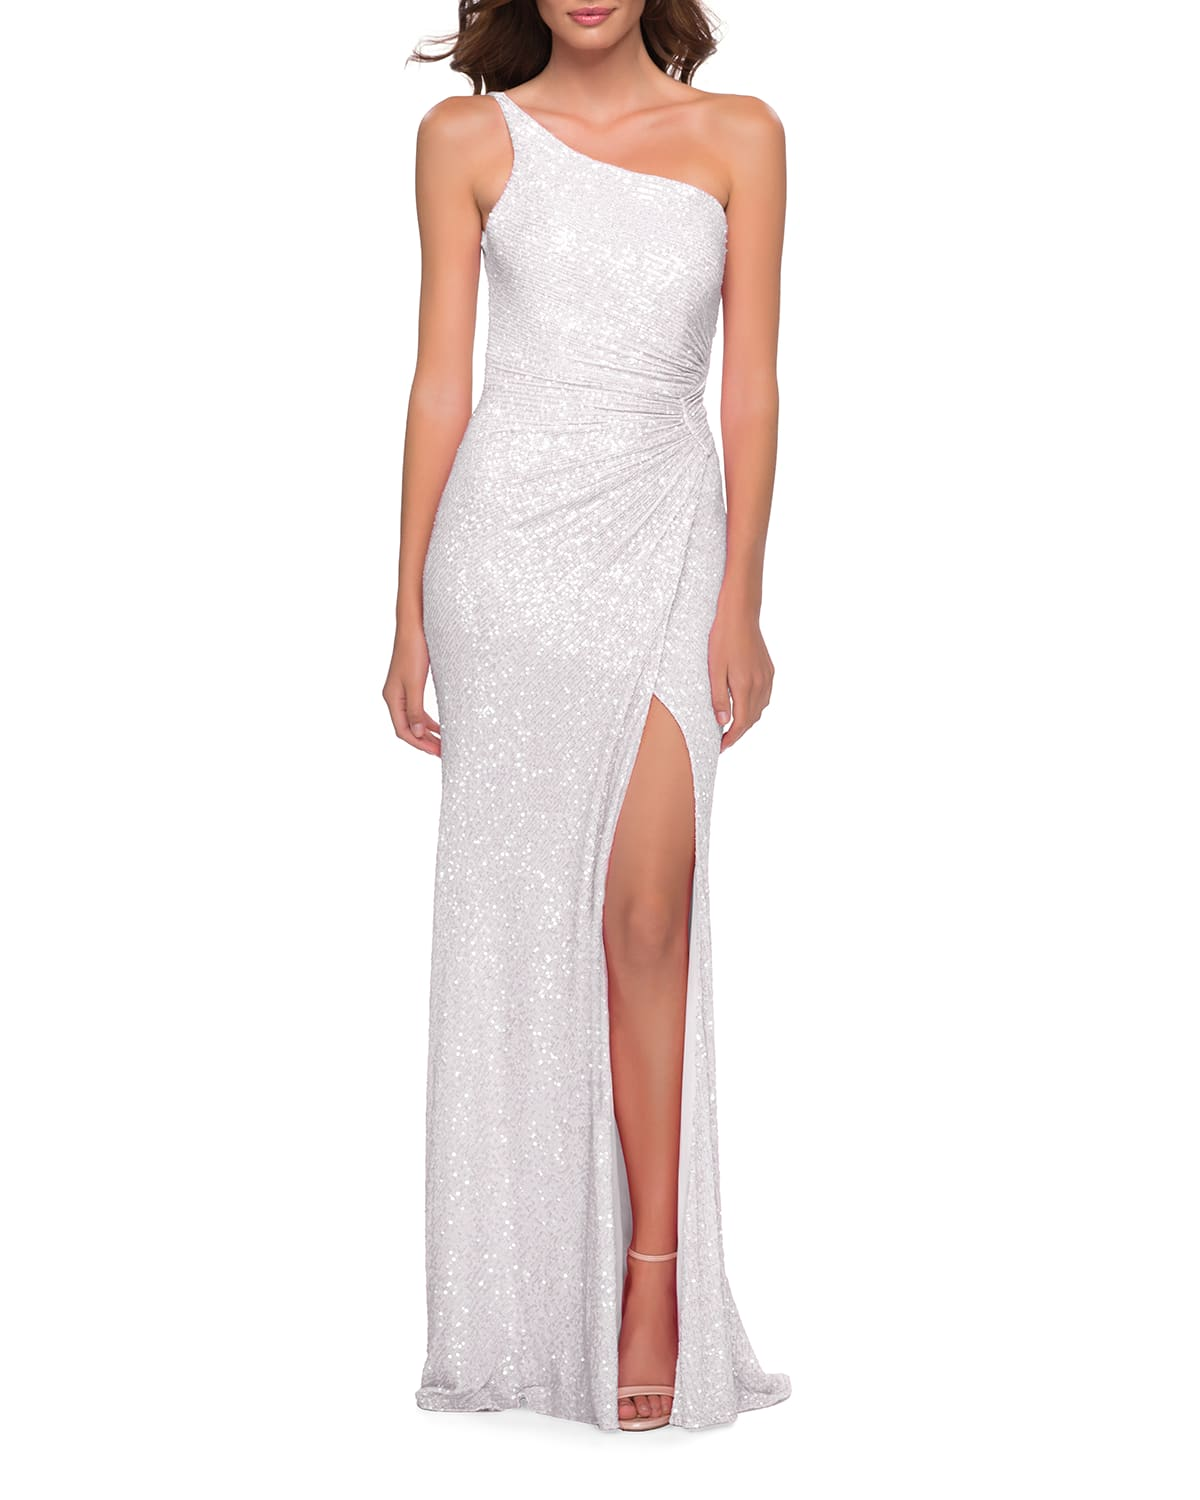 One-Shoulder Sequined Ruched Gown with Open Back